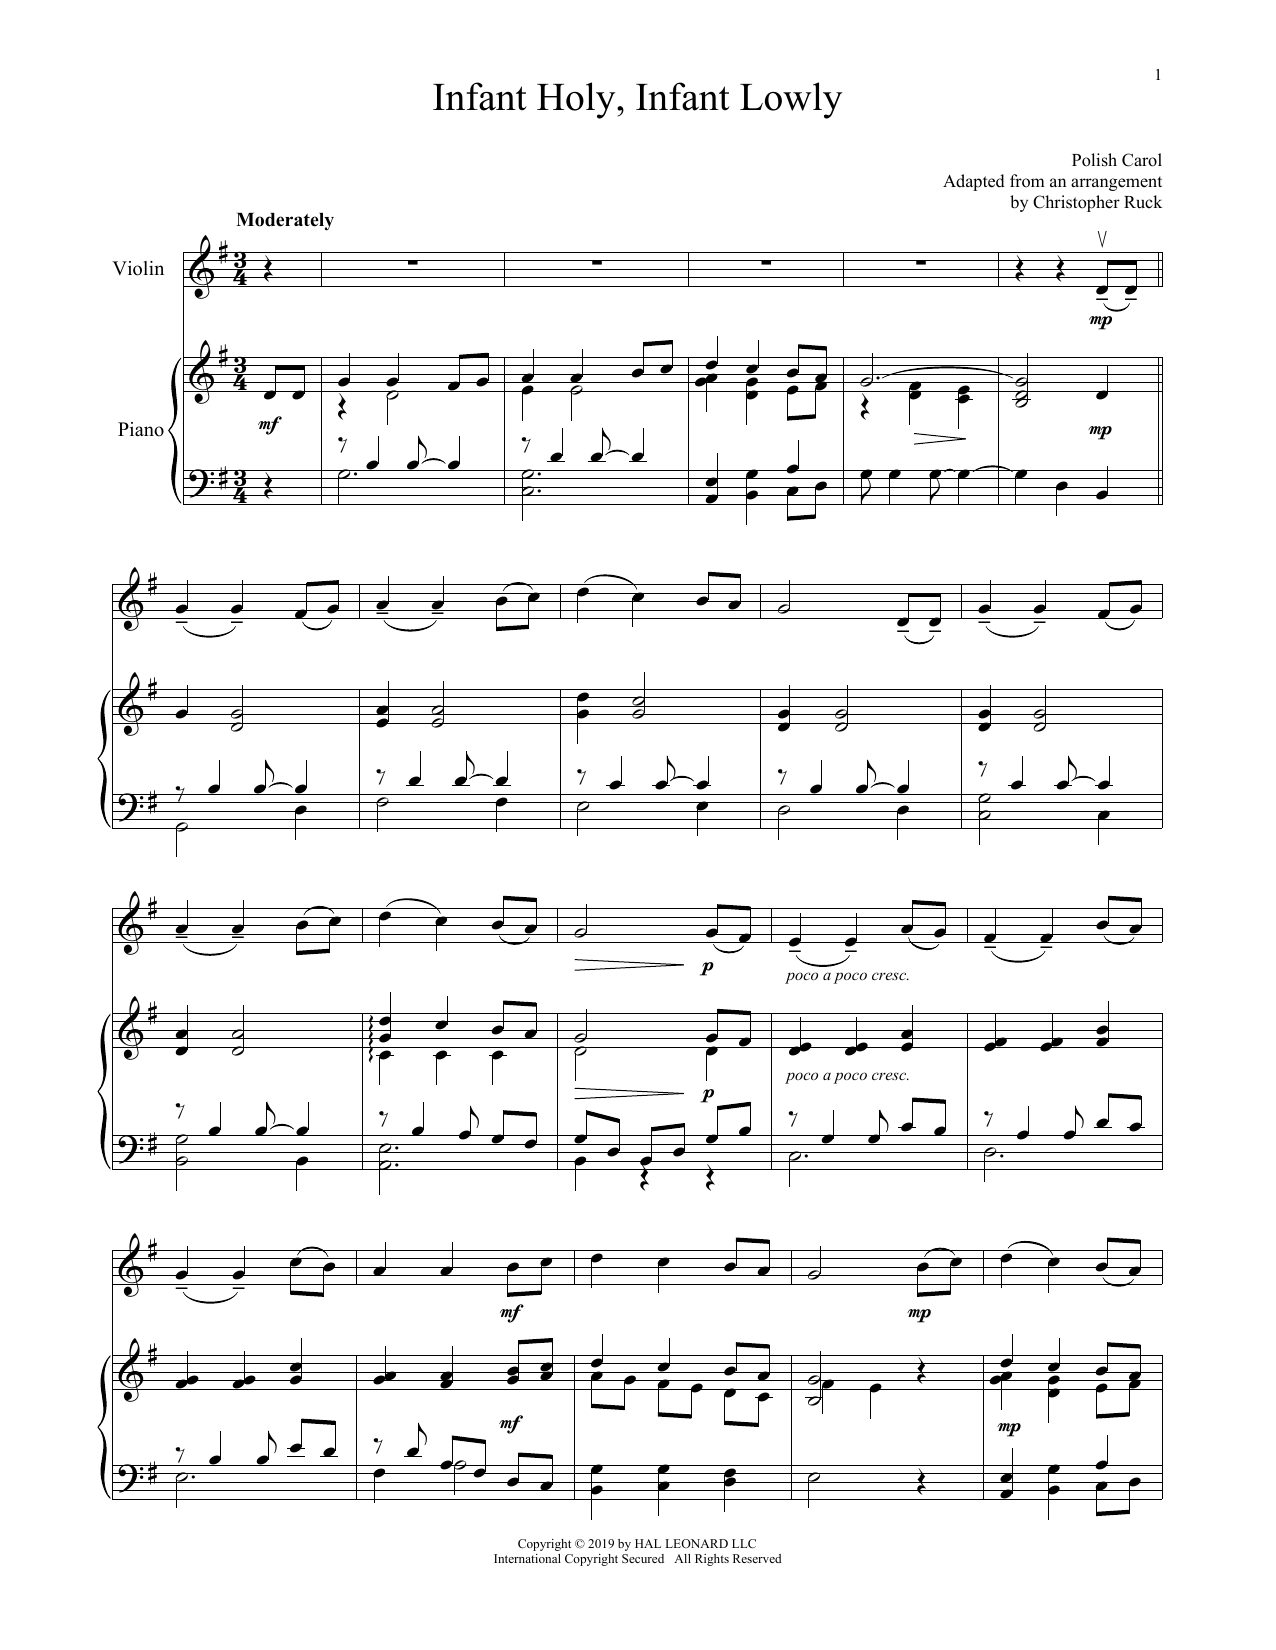 Infant Holy, Infant Lowly (Violin and Piano)